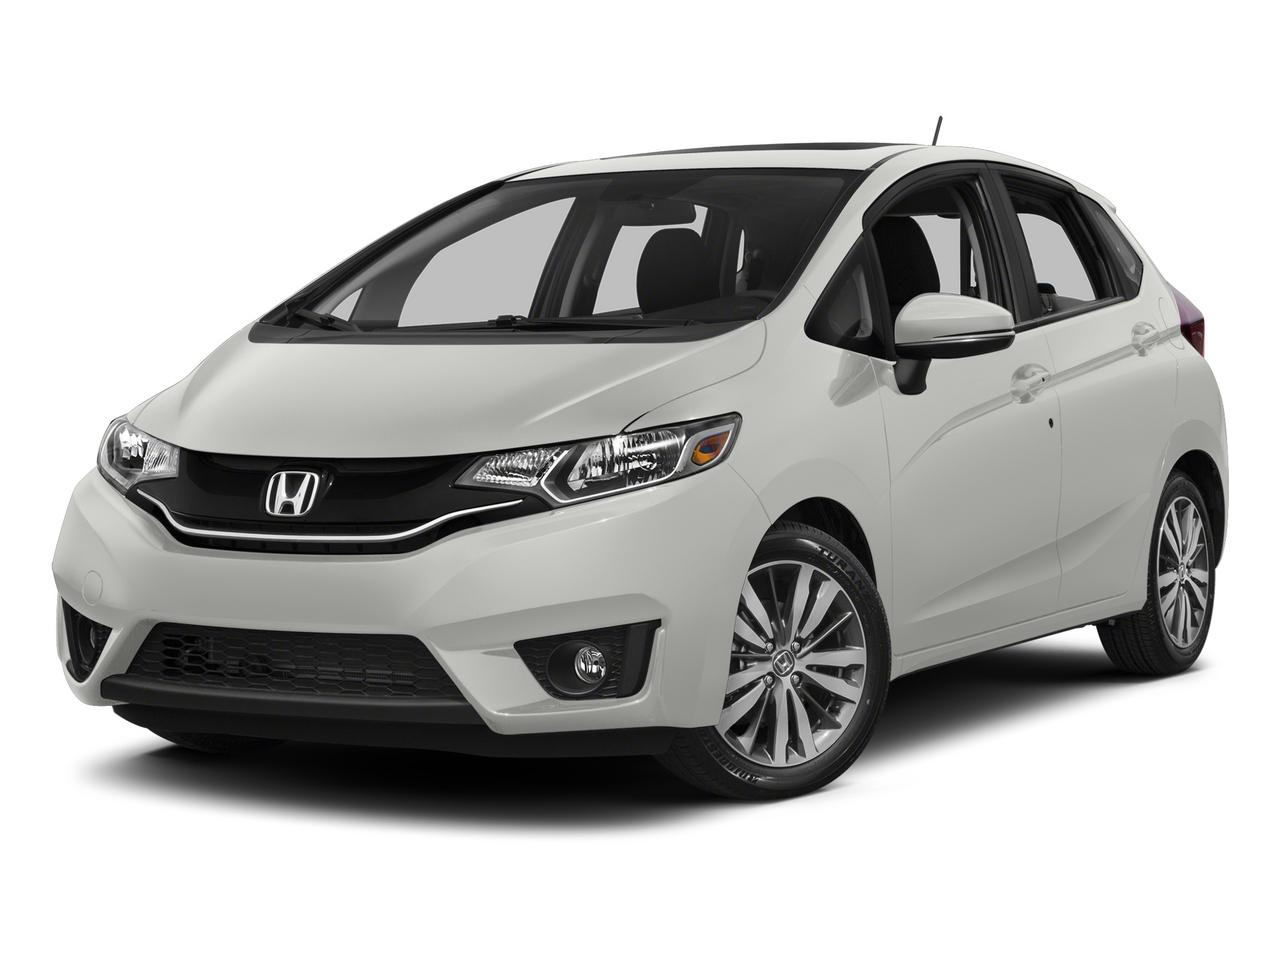 2015 Honda Fit Vehicle Photo in Brockton, MA 02301